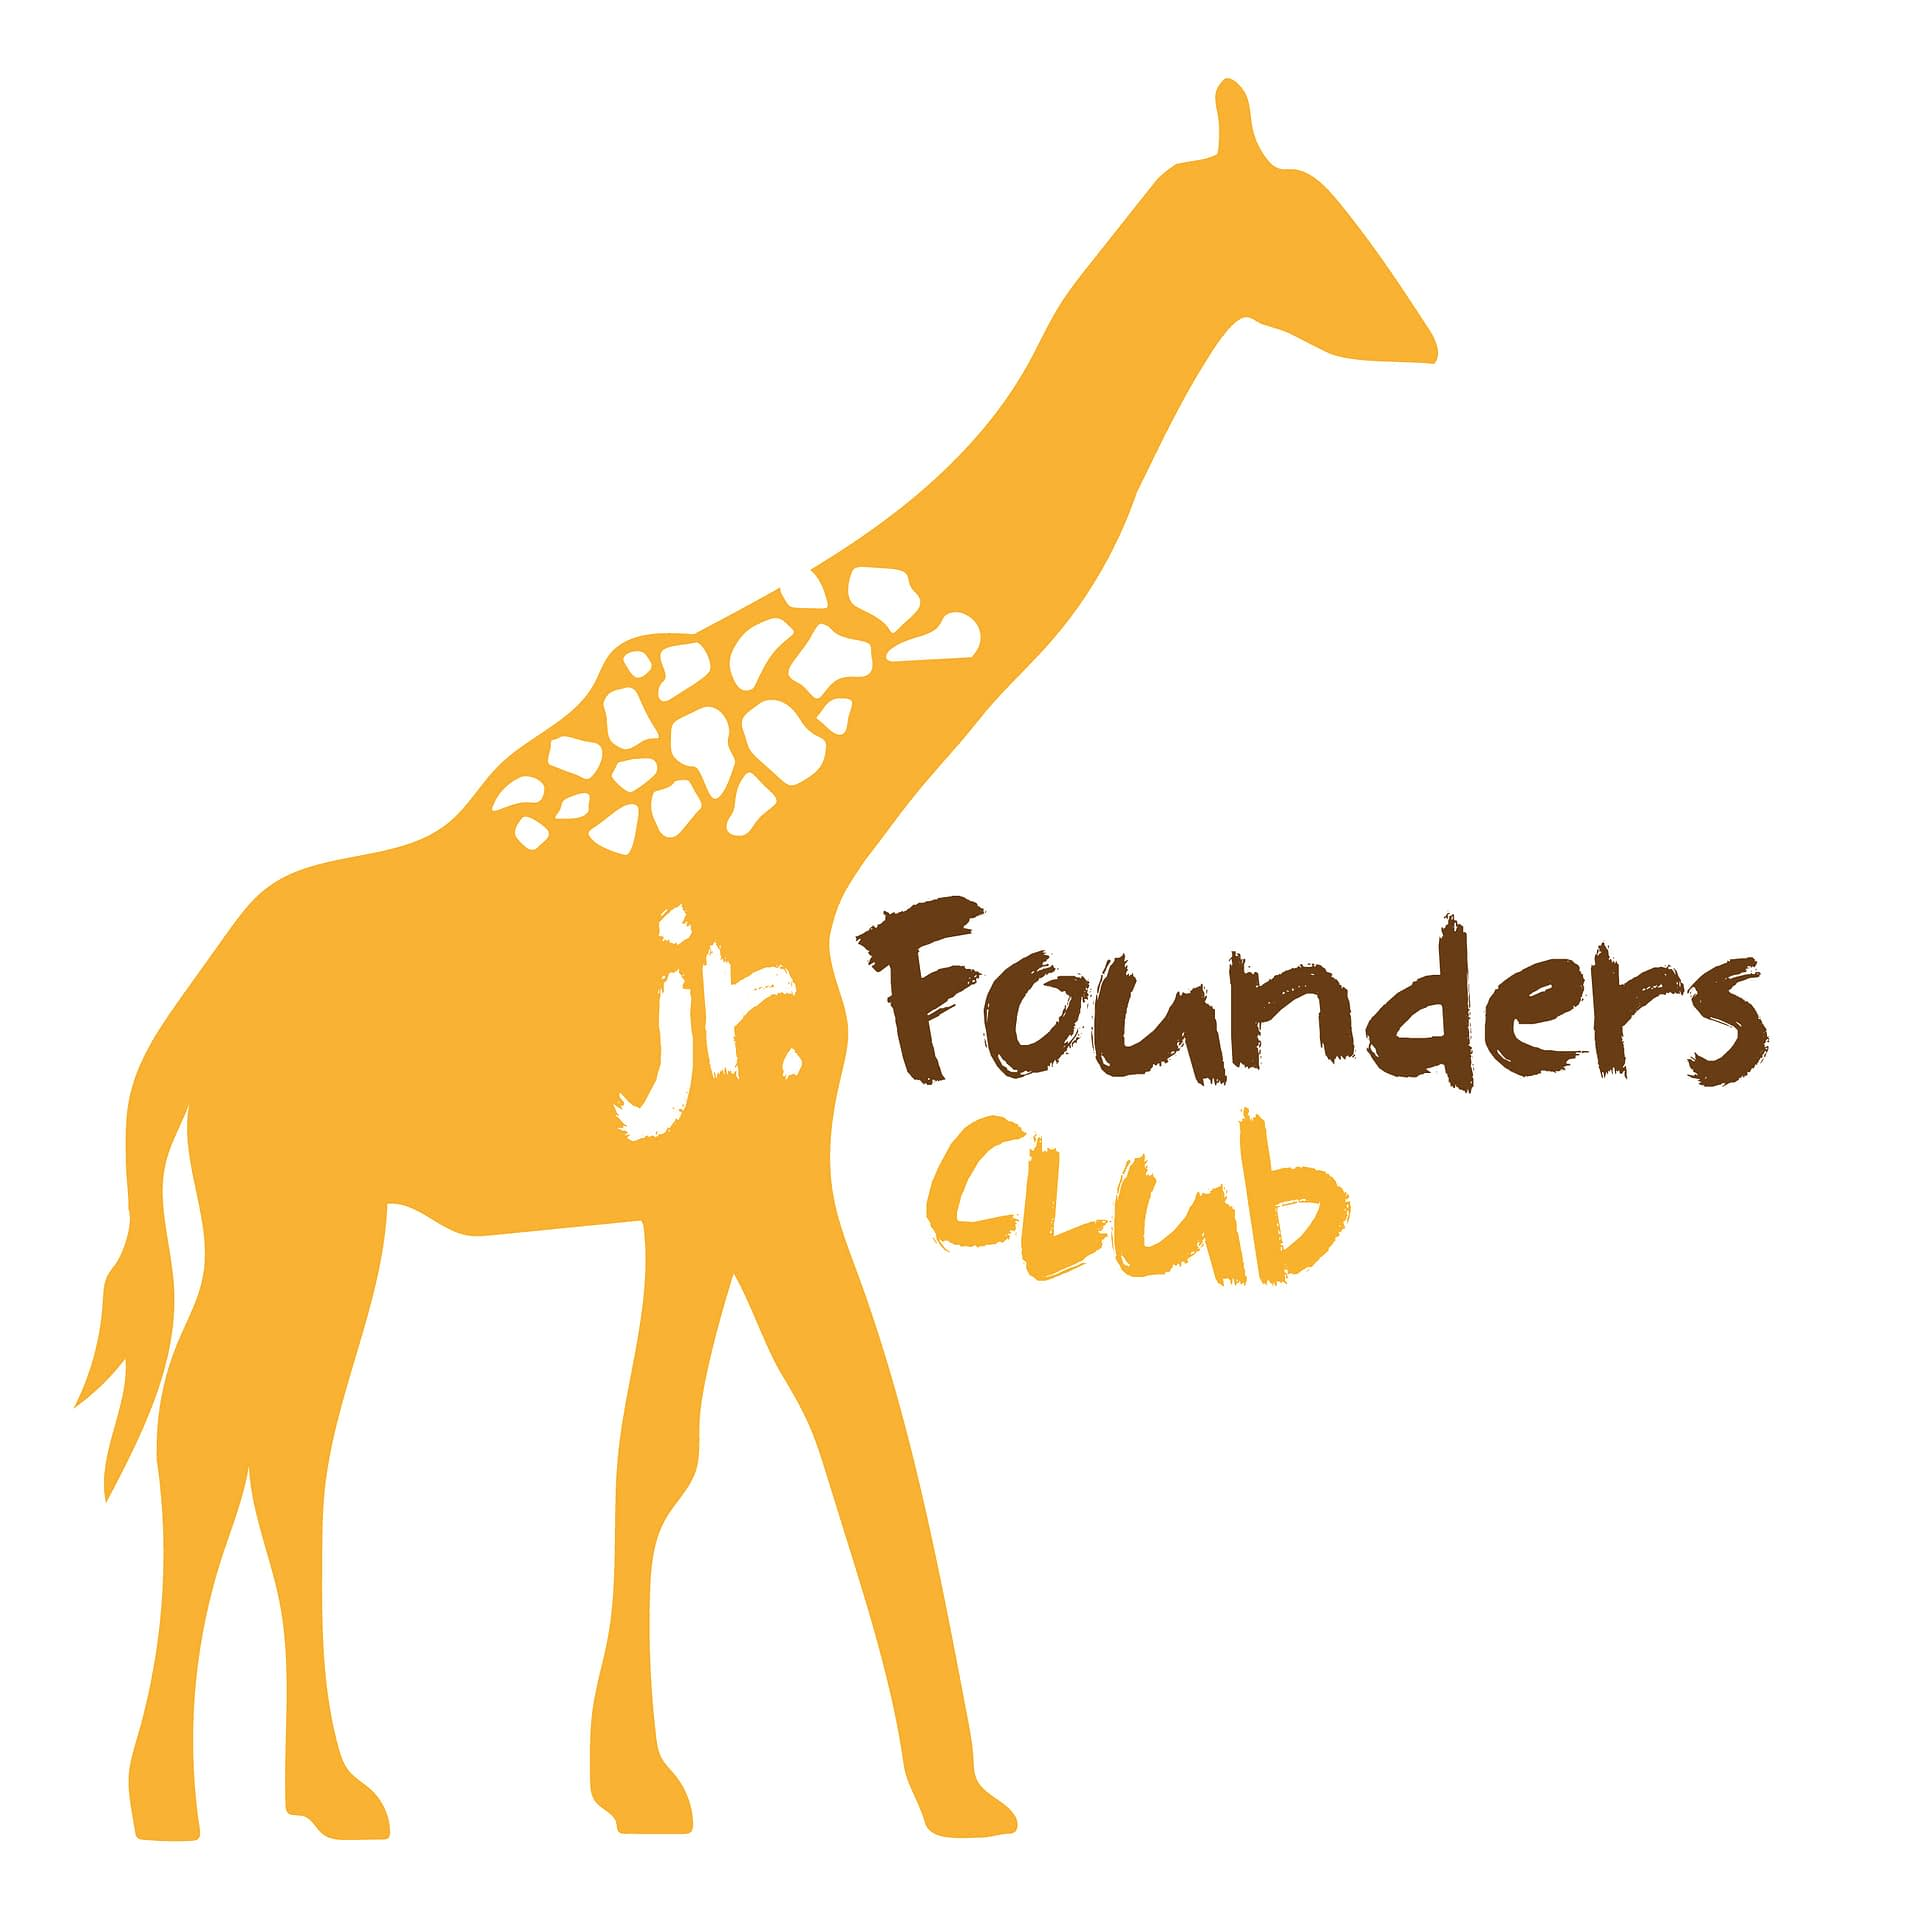 Diseño del logo de JR. Founders Club